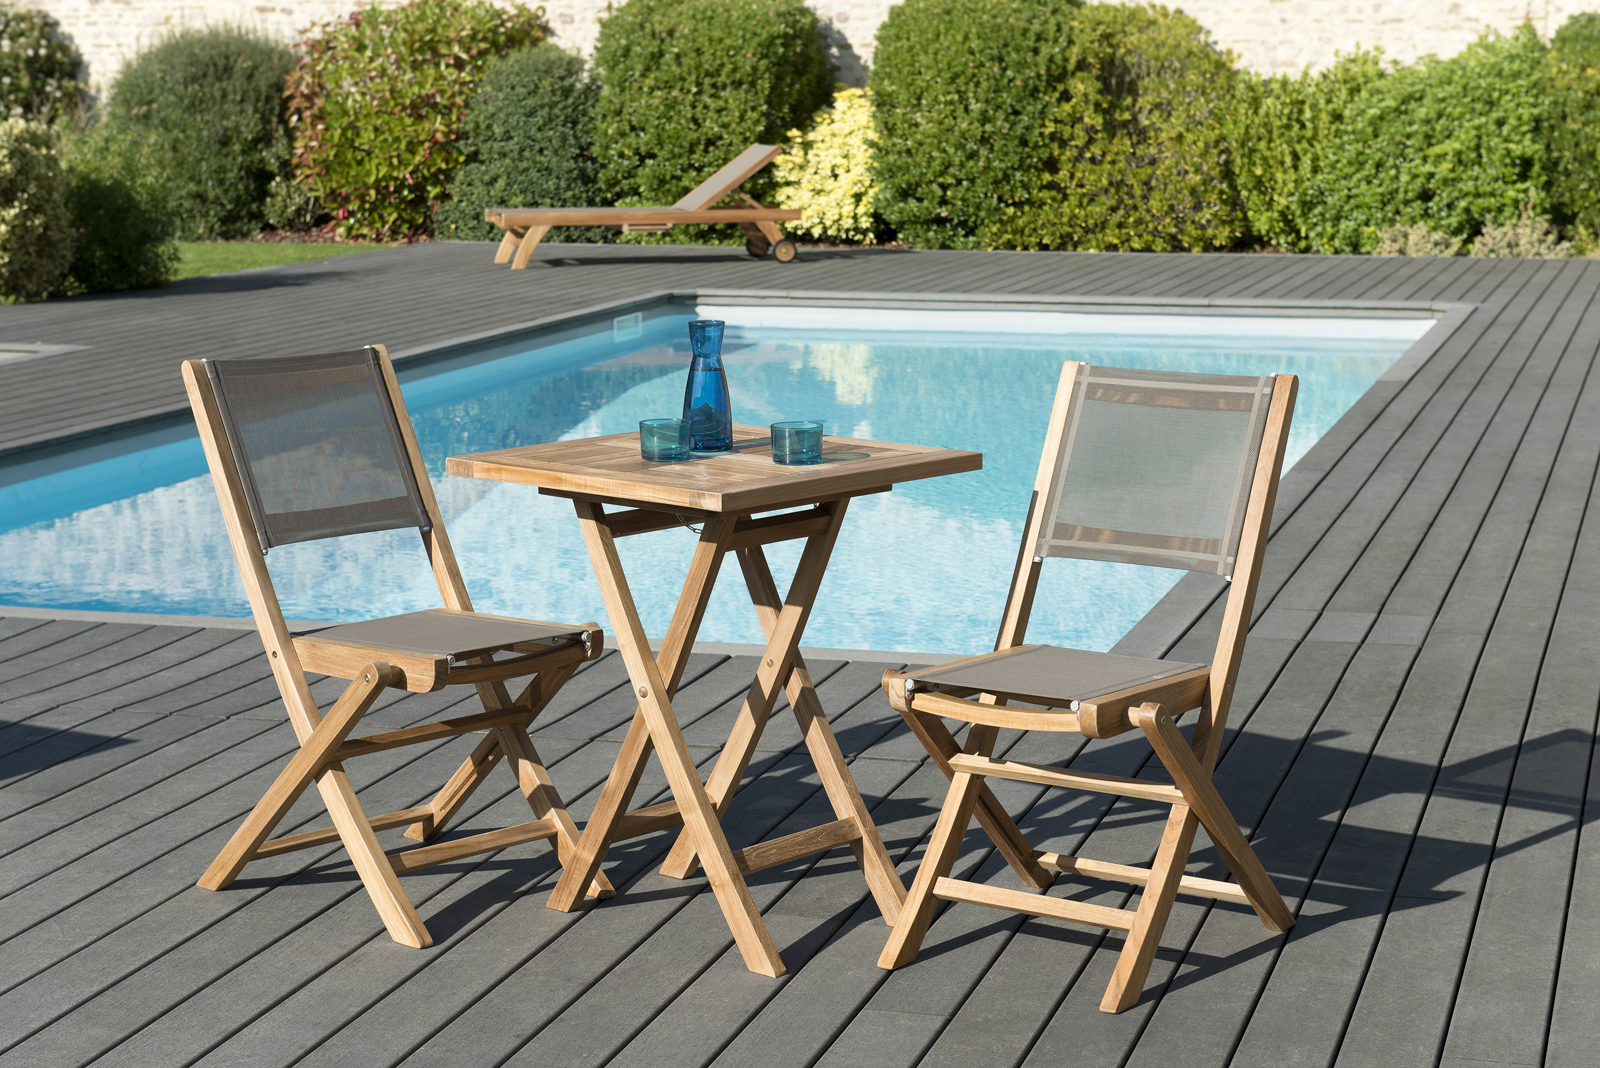 Salon de Jardin Teck Table carrée 60x60 + 2 chaises pliantes SUMMER ...